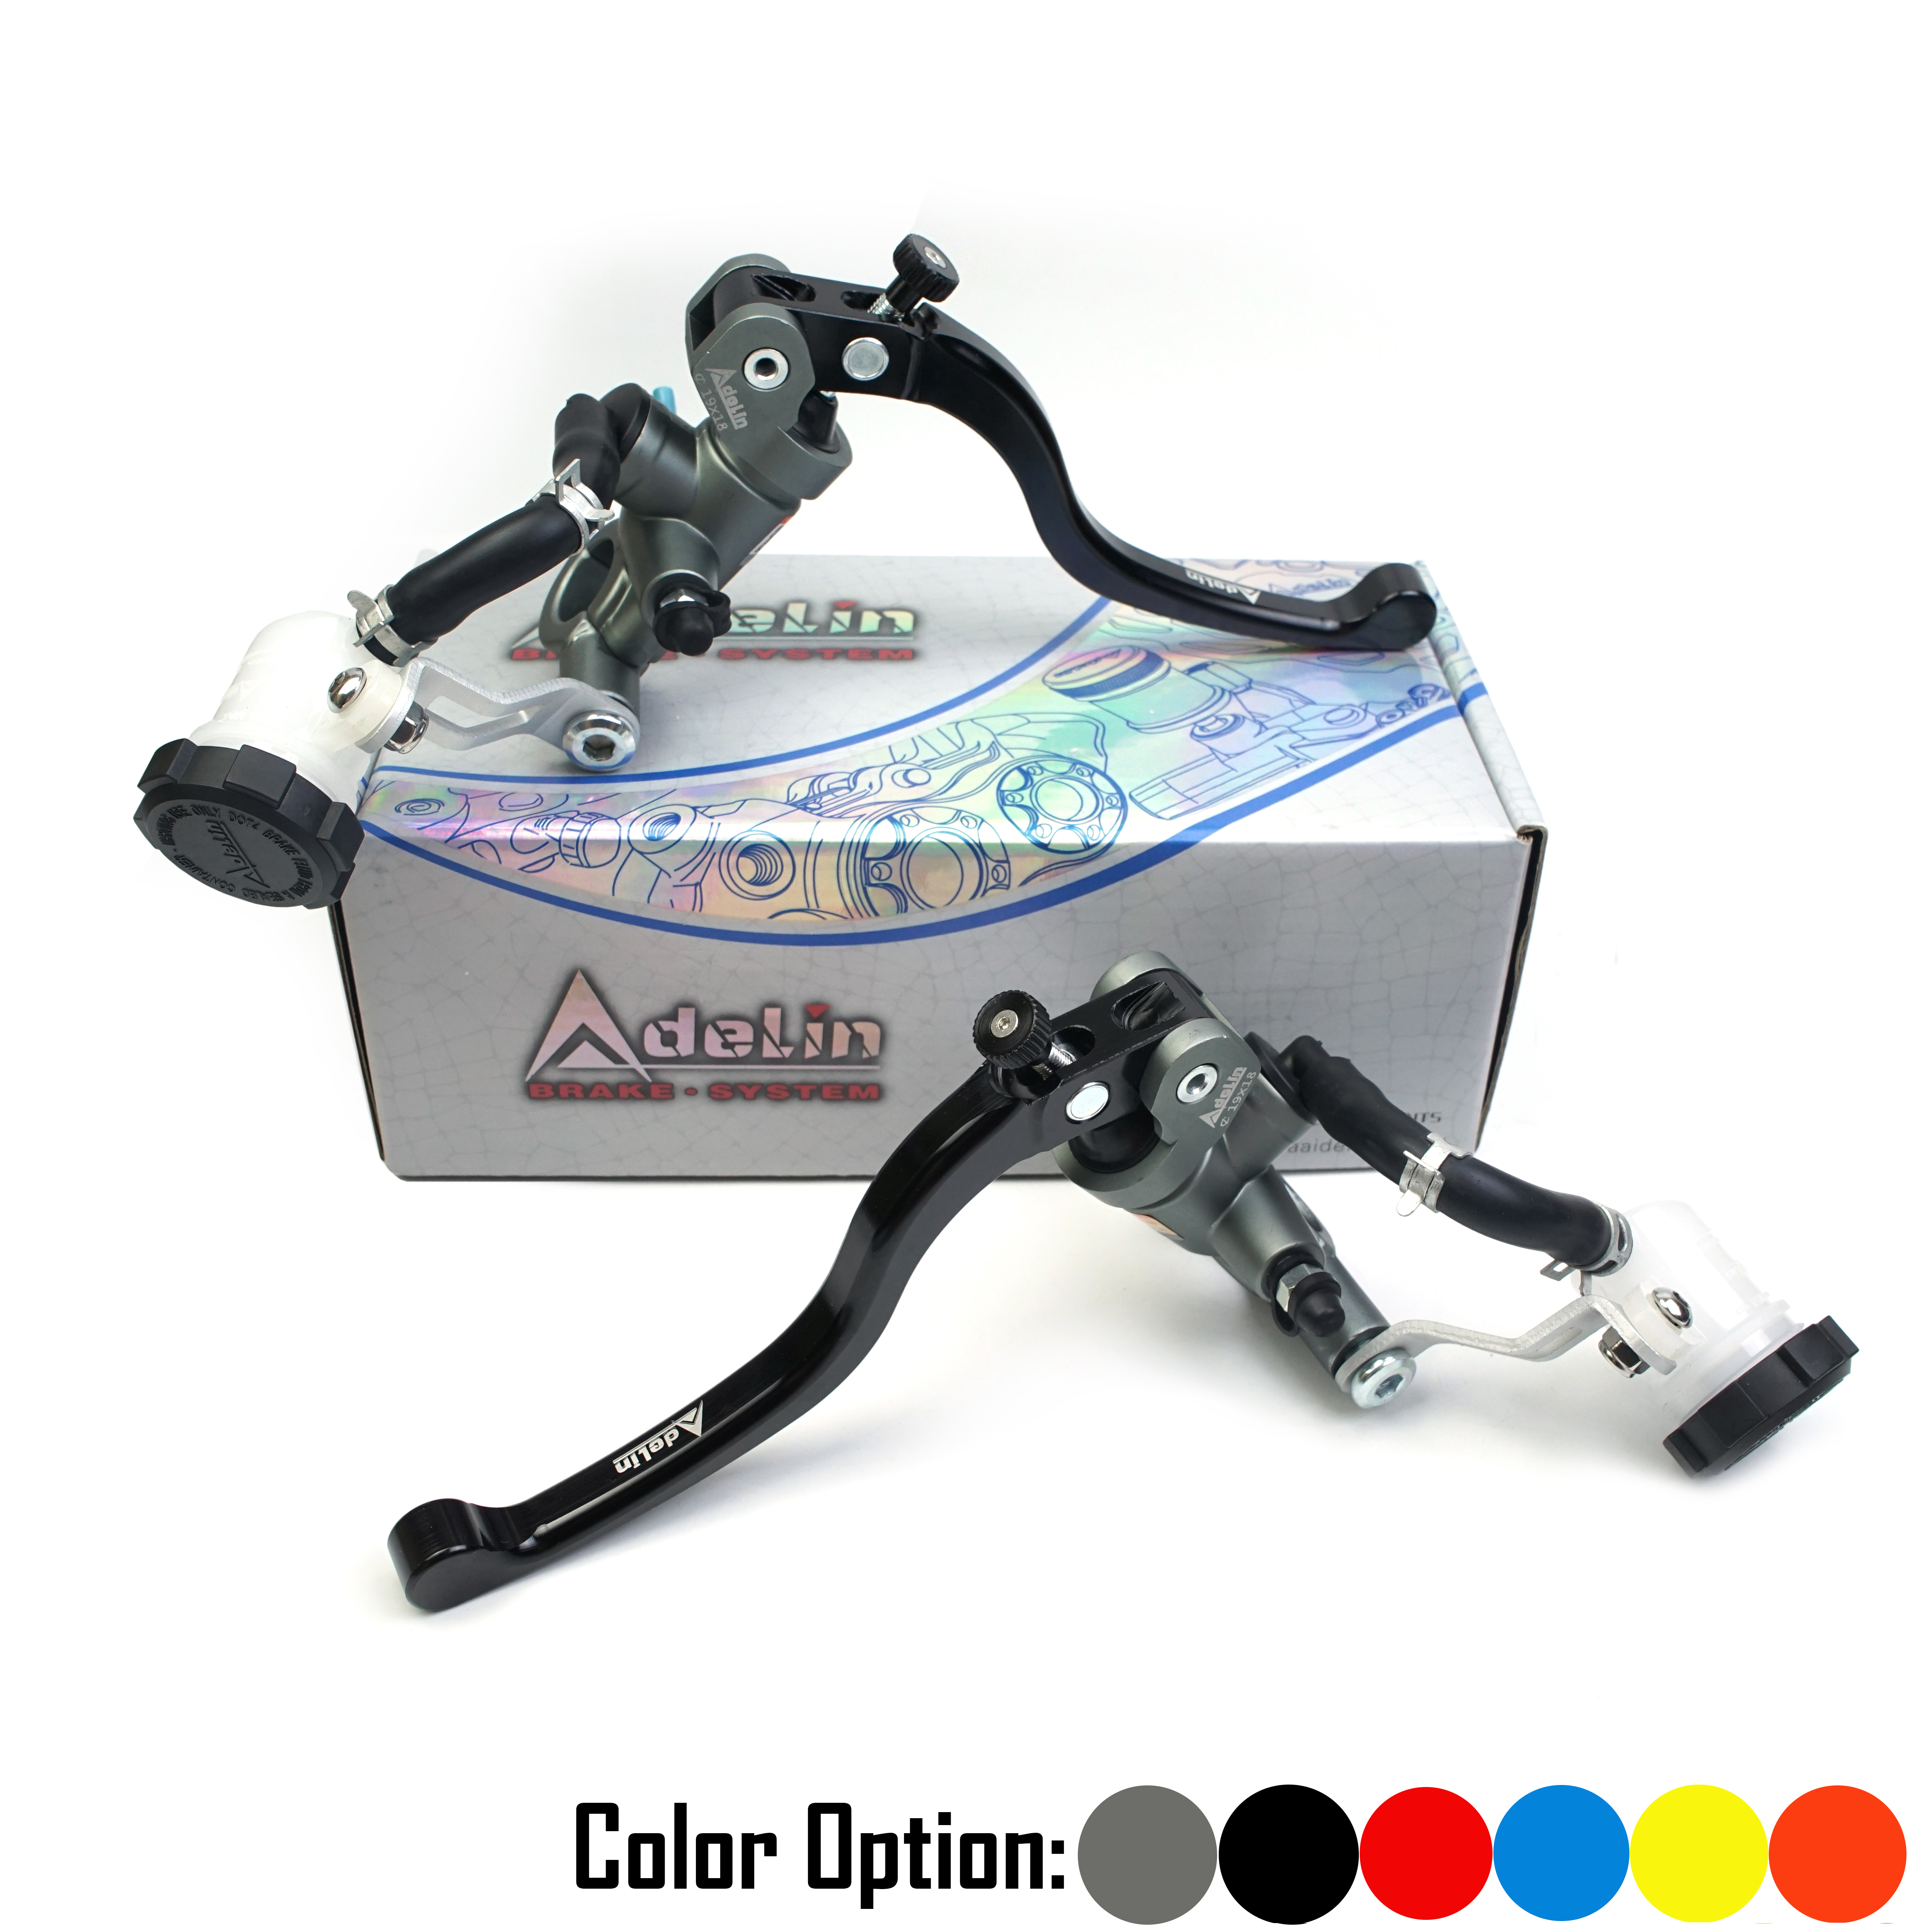 Adelin PX1 Motorcycle 19mm 16mm 17.5mm Brake Master Cylinder Hydraulic FOR R1 R3 R6 FZ6 title=